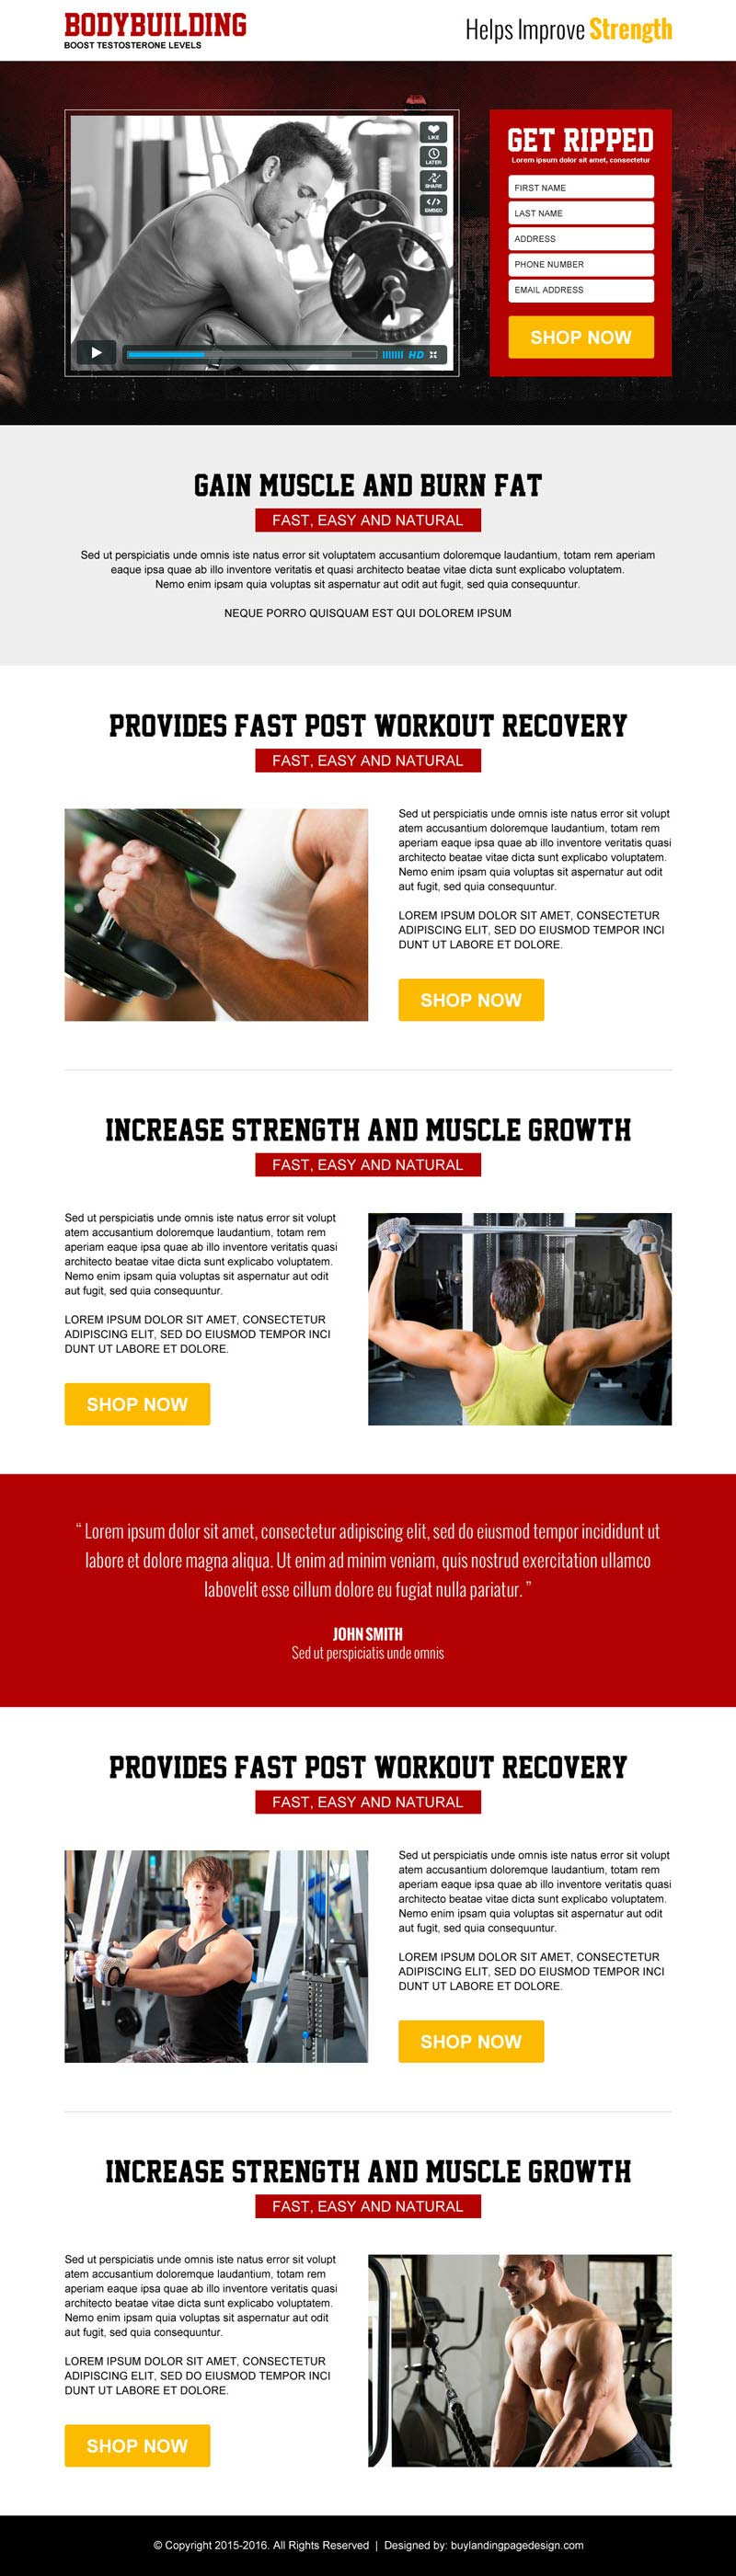 best-bodybuilding-business-service-responsive-video-landing-page-design-004